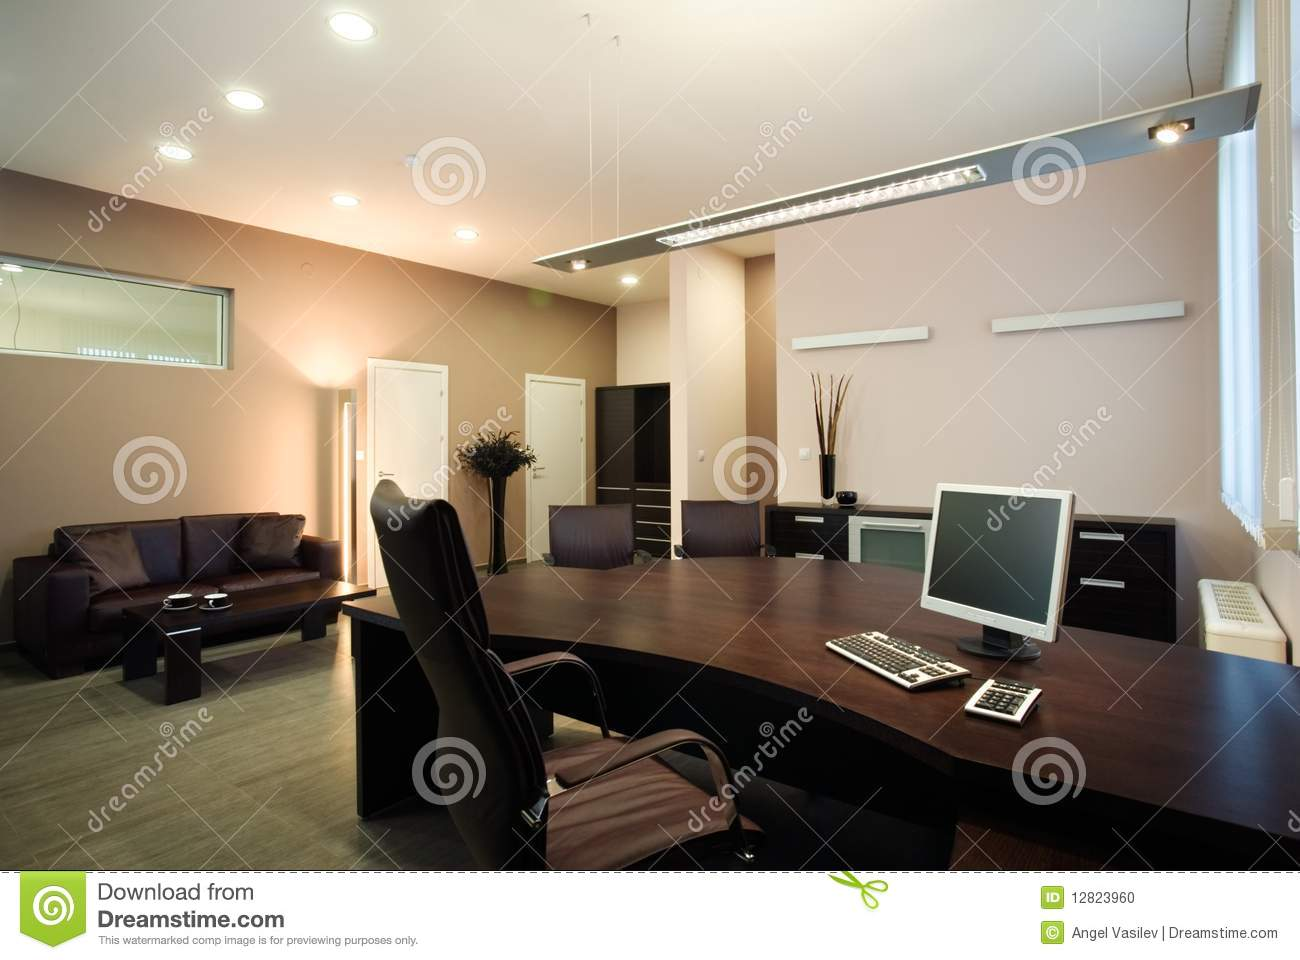 Elegant and luxury office interior design stock photo for Luxury office interior